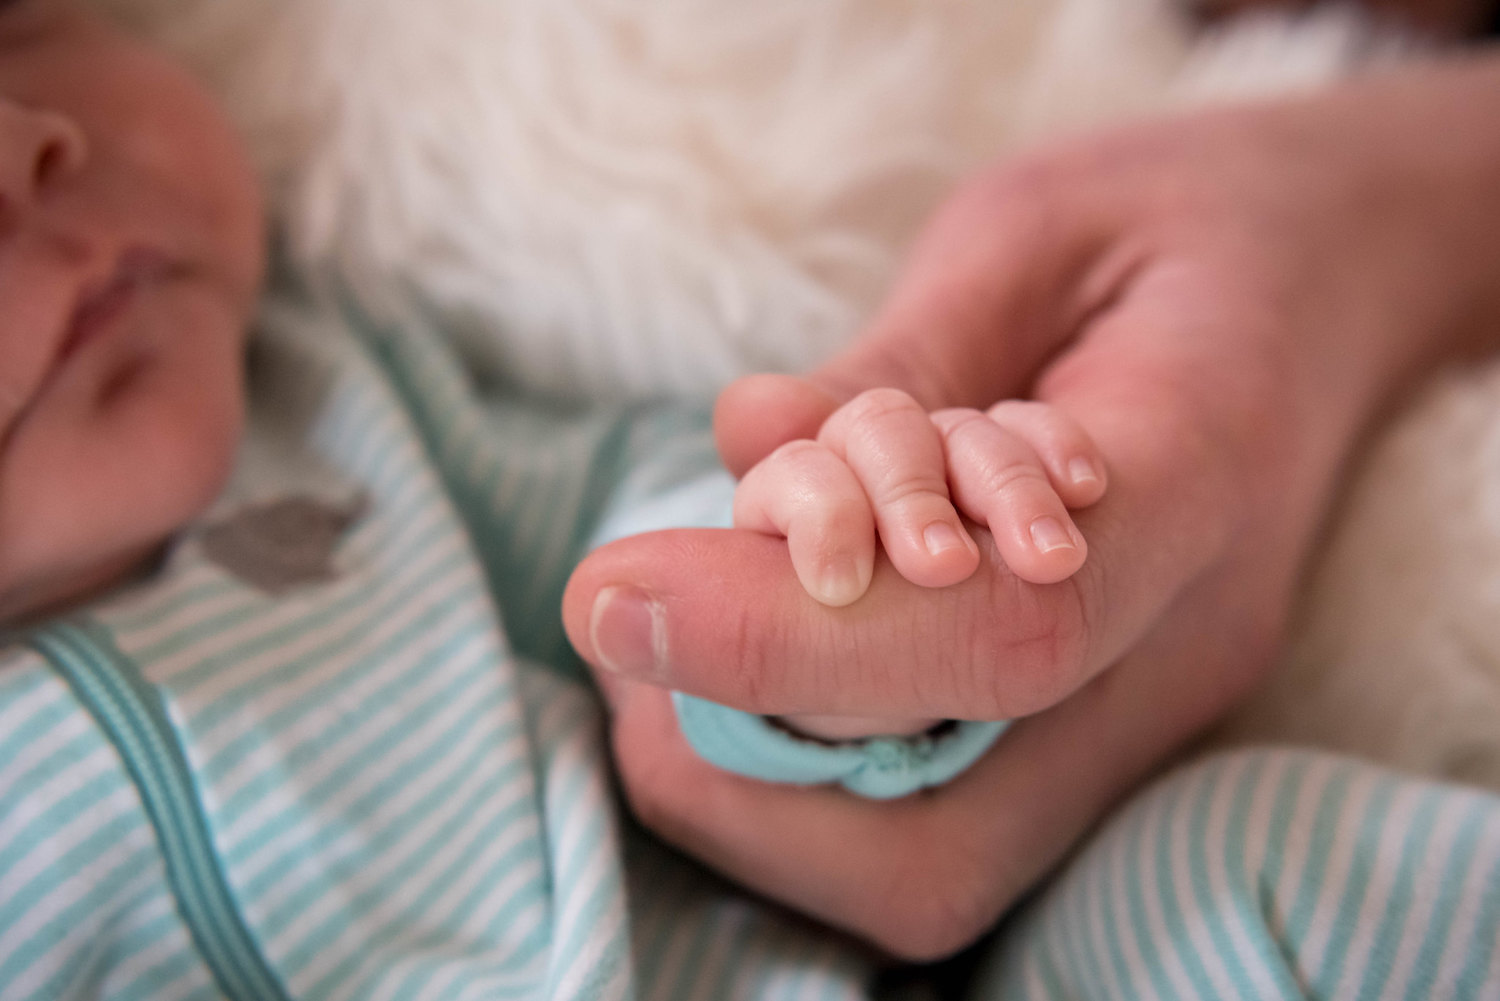 An adult hand embracing a baby's hand